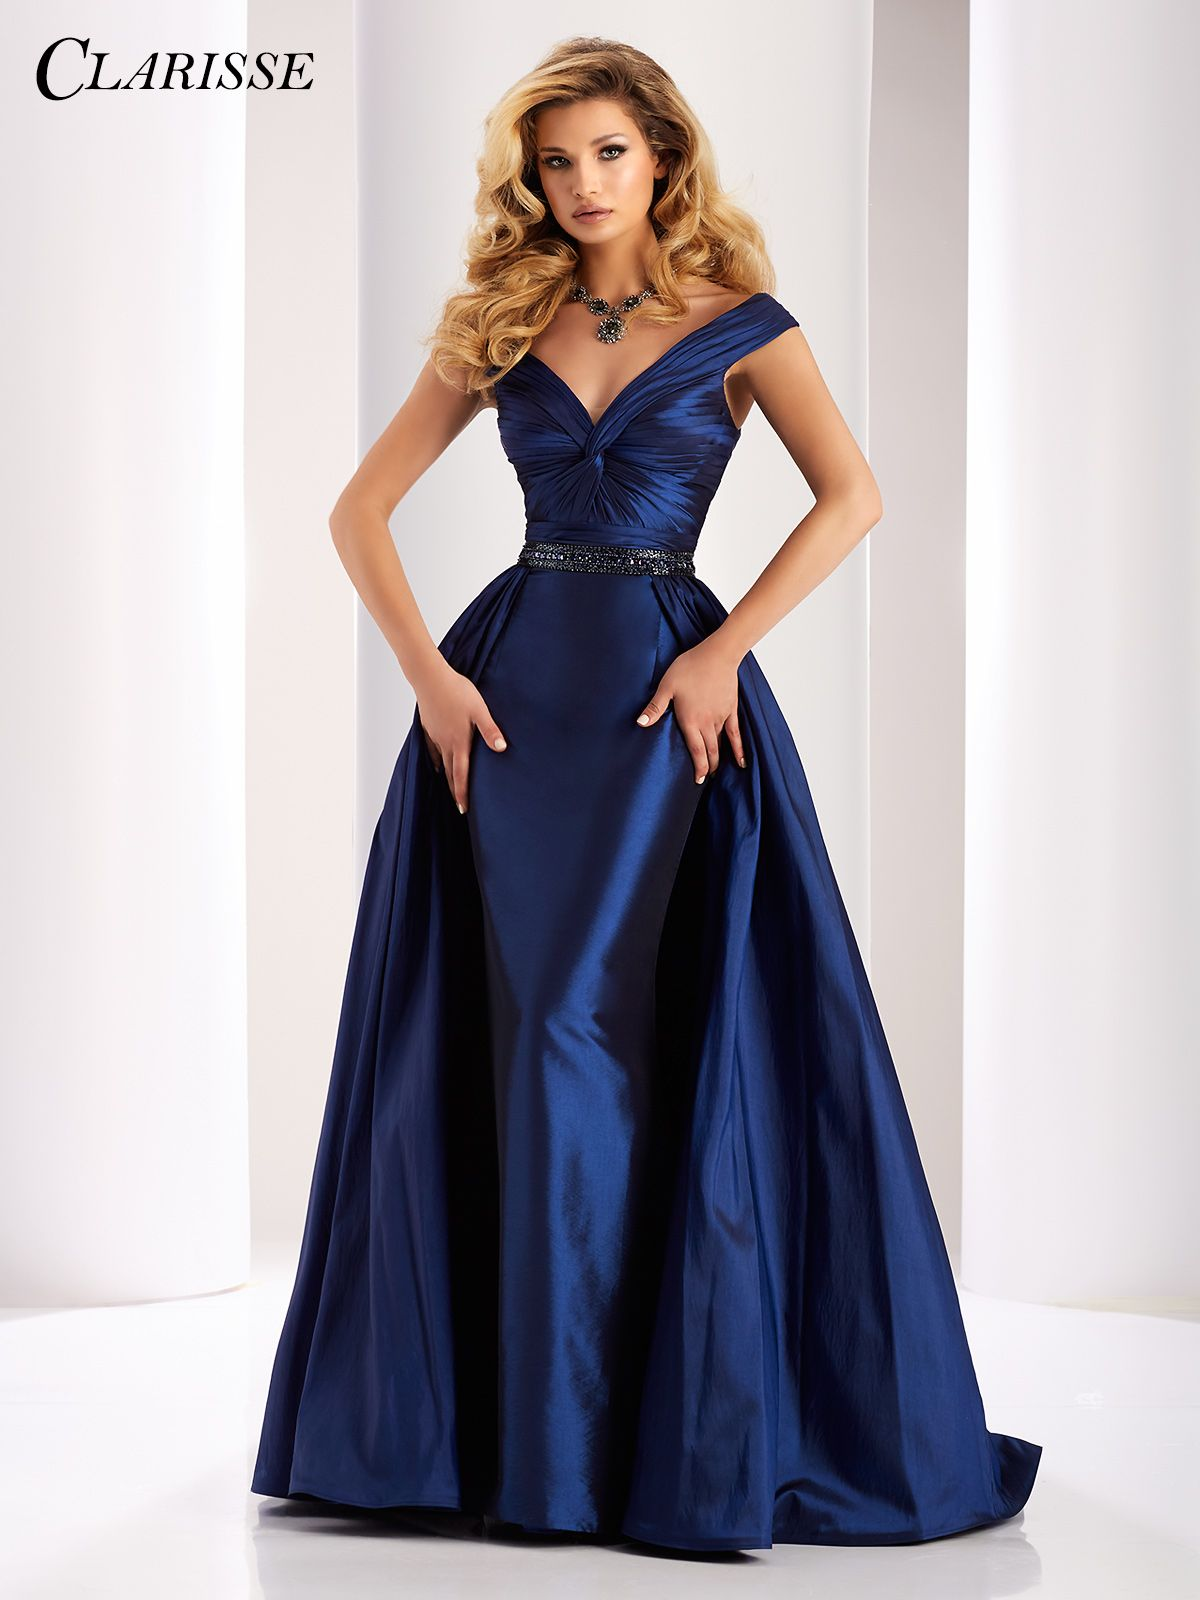 Clarisse Formal Gown 4862 with Detachable Train | Nice | Pinterest ...